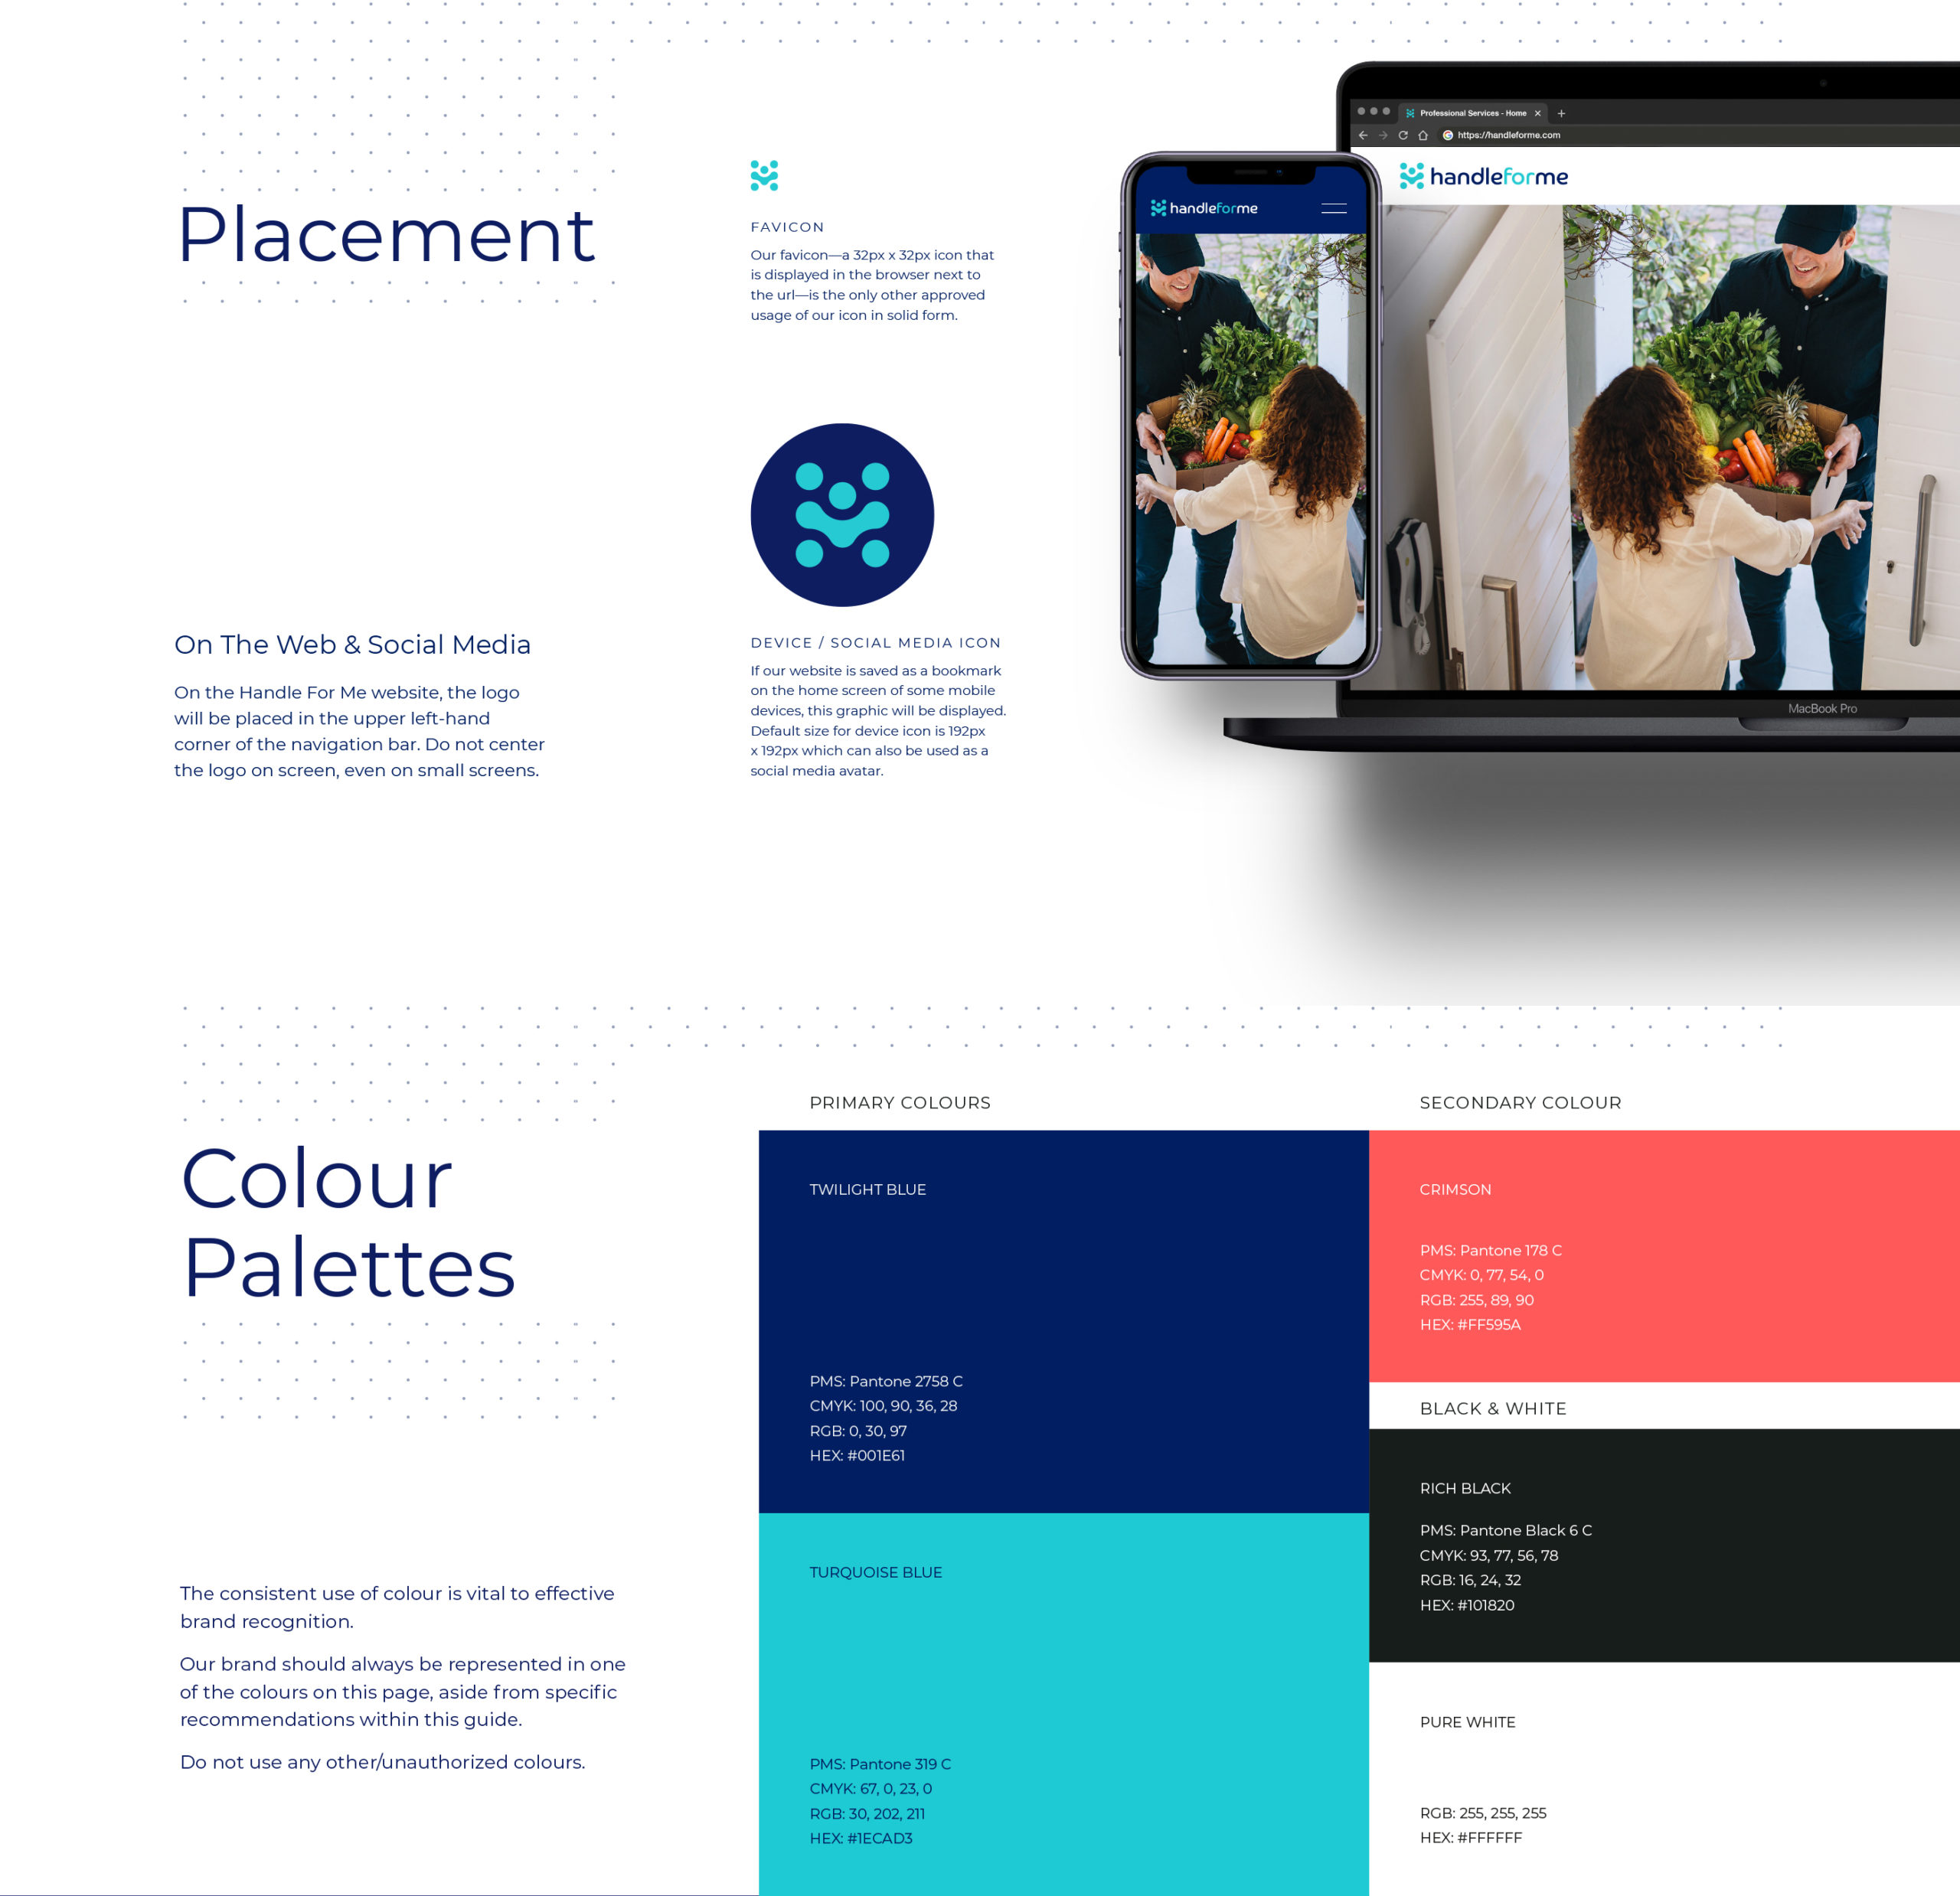 Social media icon and colour palettes supporting Handle for Me brand identity